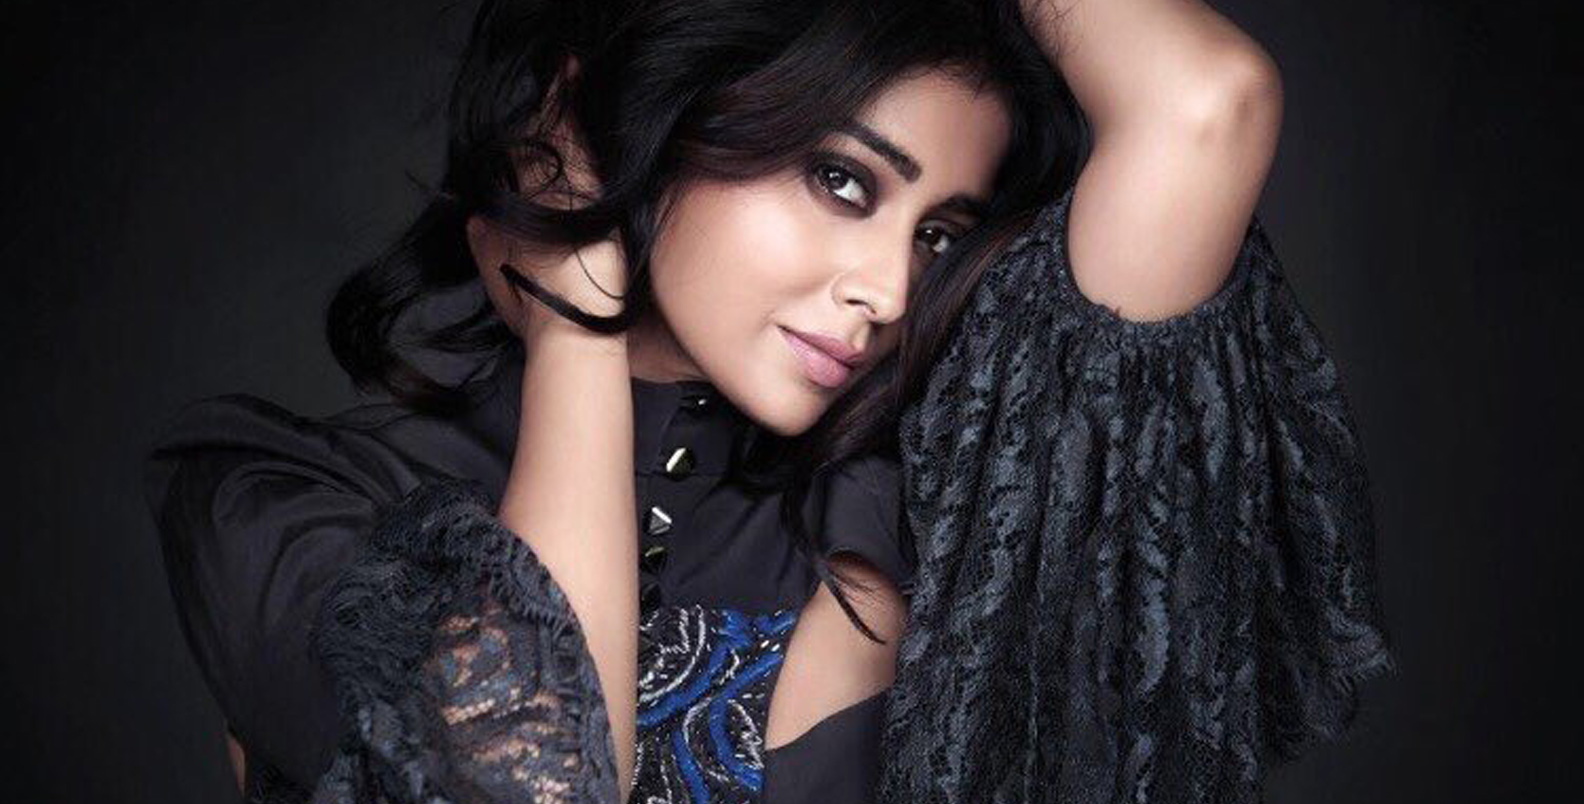 top 10 best shriya saran hd free wallpaper download images